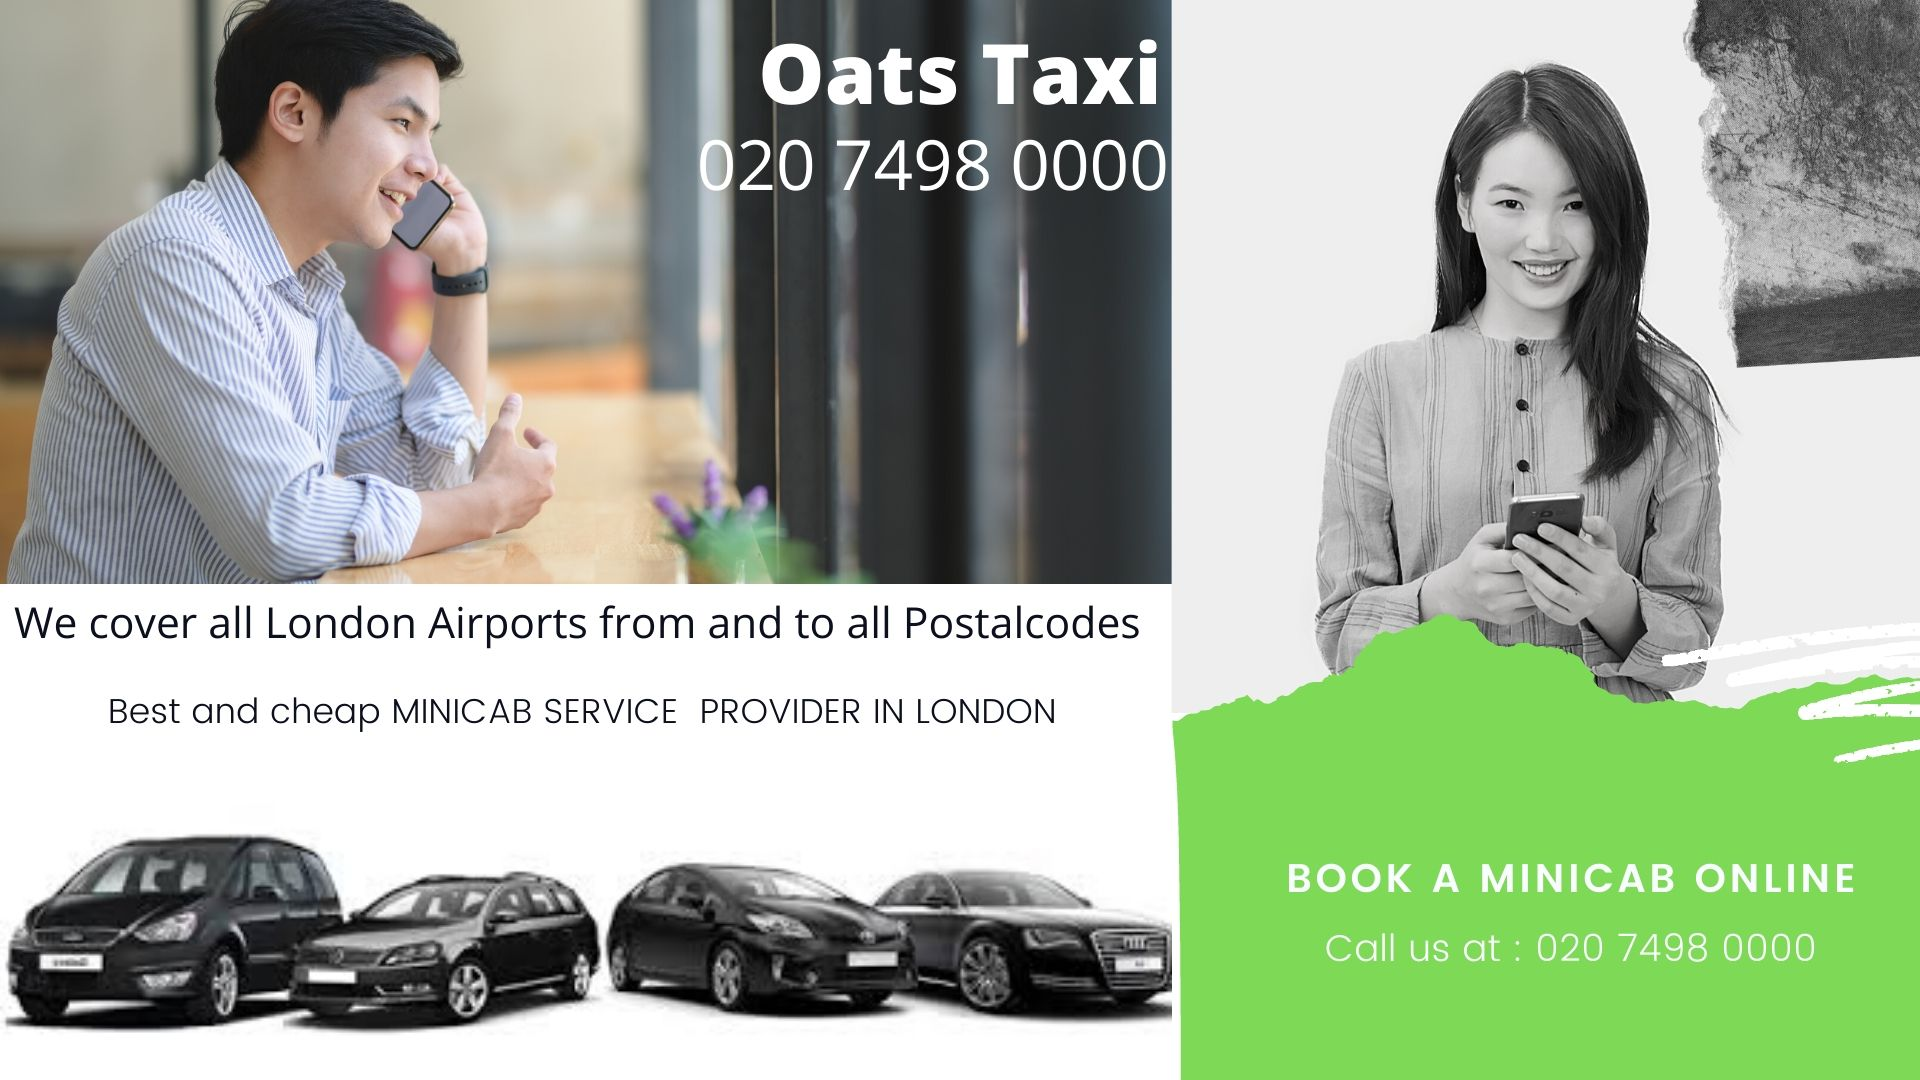 Nearest Taxi Office in Clapham Park | Nearest Taxi Office in Gatwick Airport | Call now : 02074980000